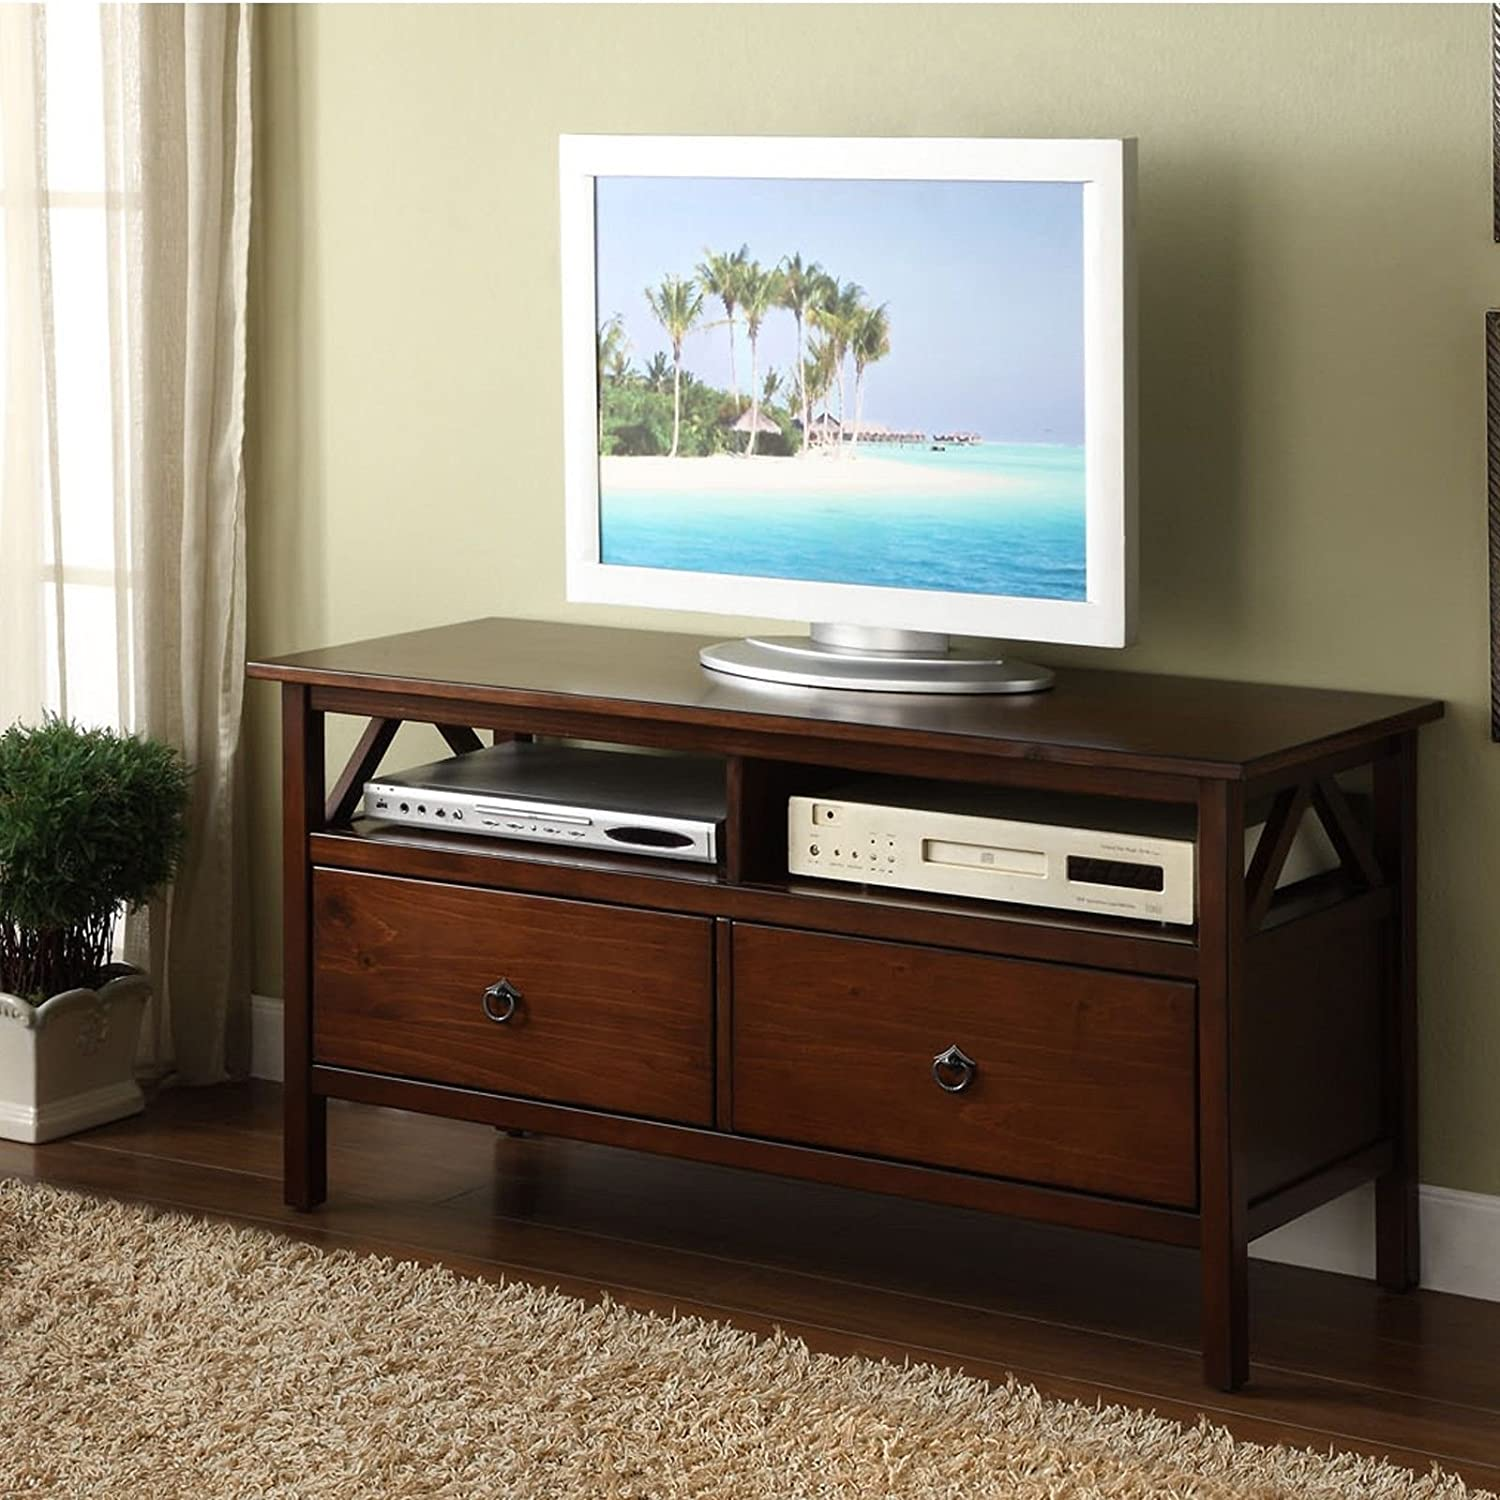 Pongwit TV Stand Storage Living Room Home Furniture Wood Drawer Decor Aged Cherry